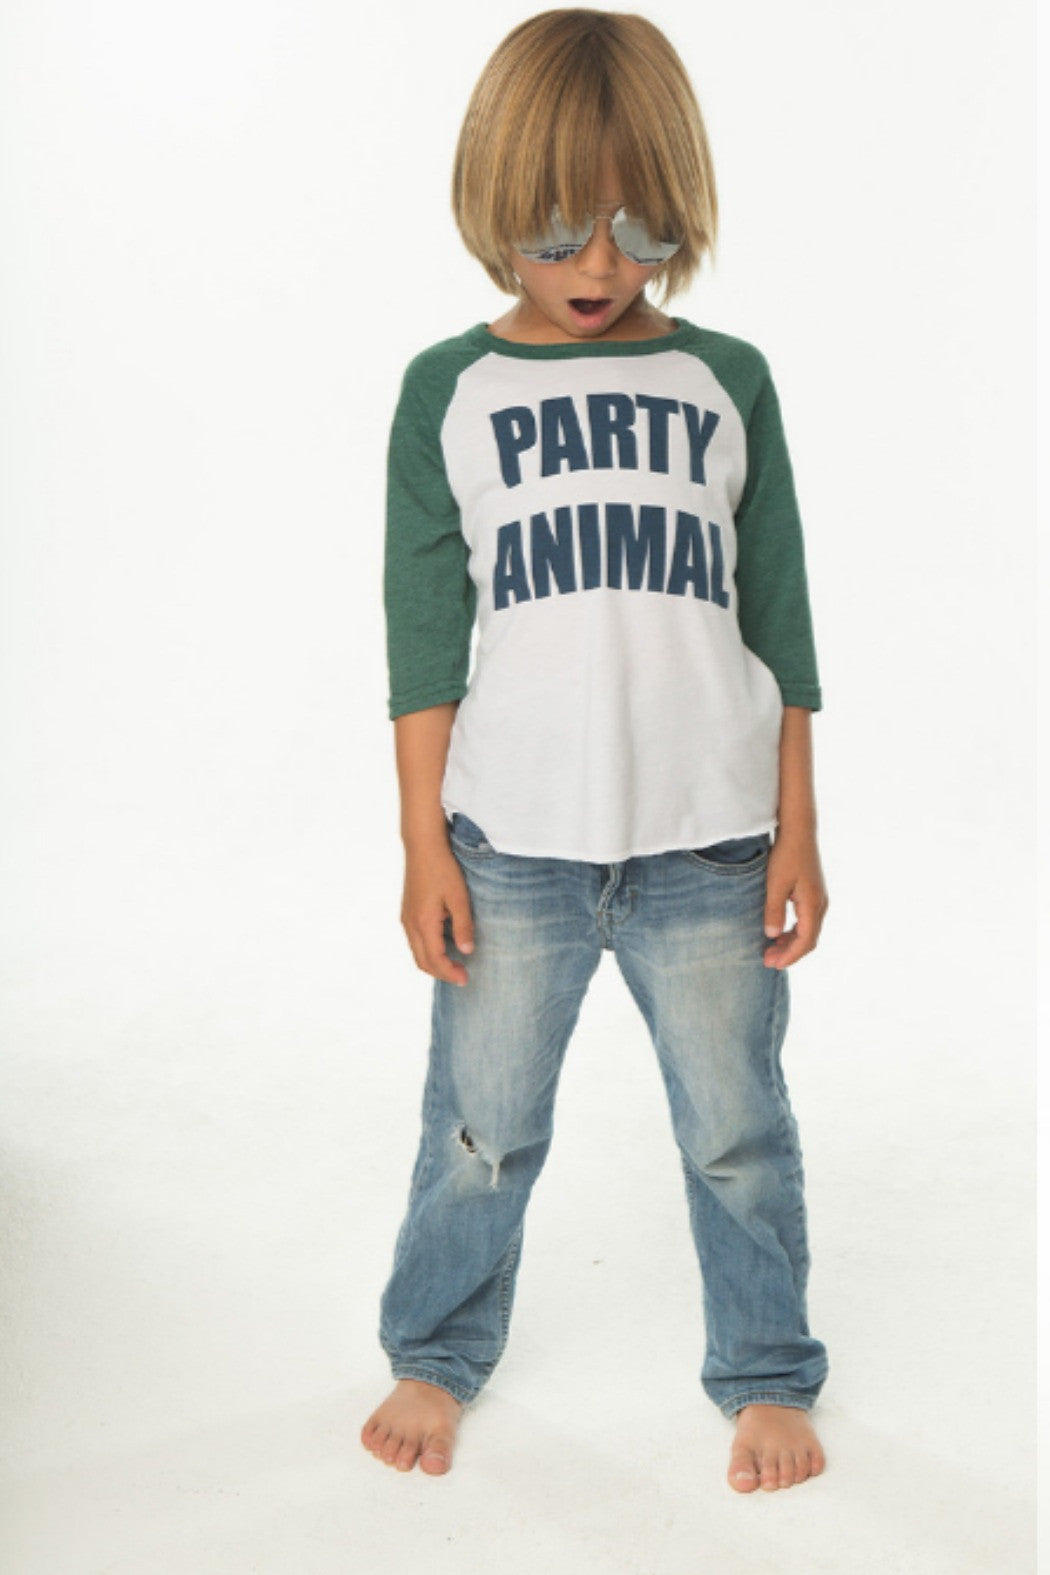 Chaser Kids - Party Animal - R+D Hipster Emporium | Womens & Mens Clothing